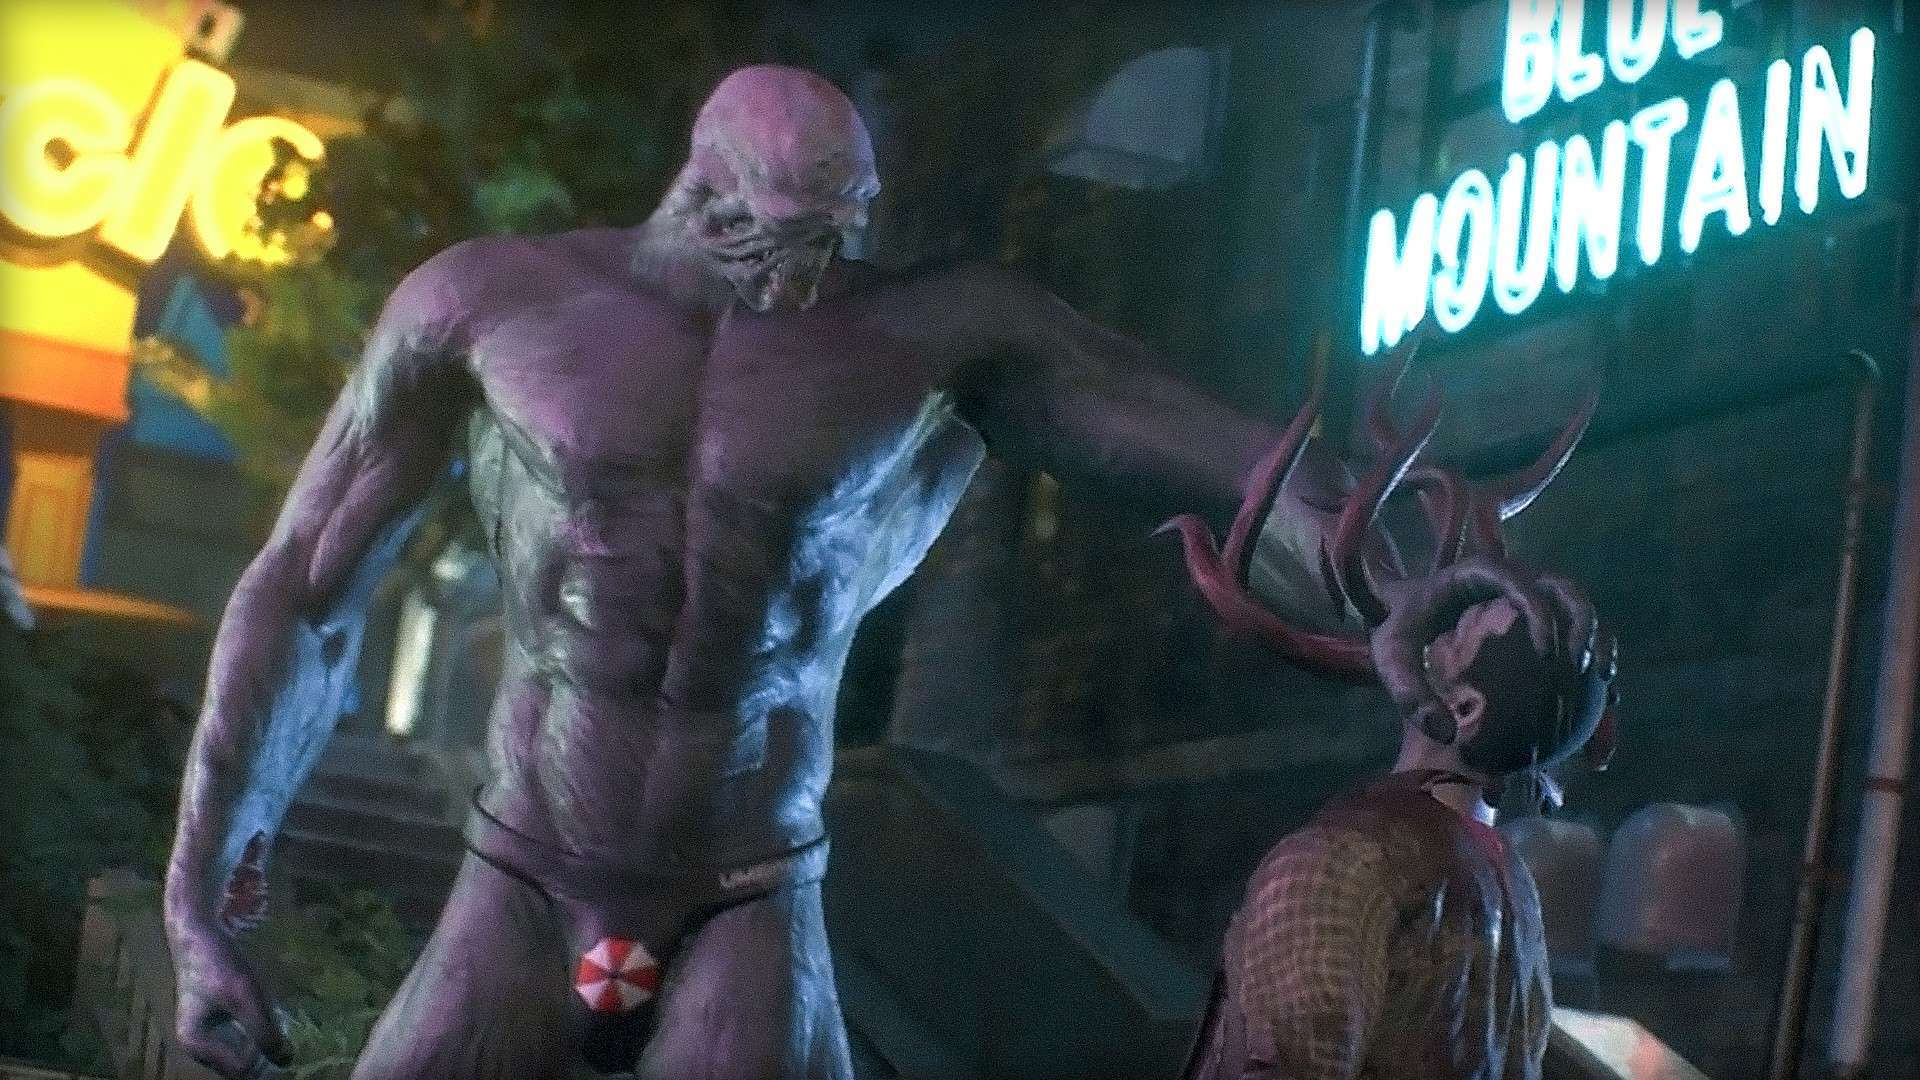 Nemesis Beach Boy - Someone Already Created A Sexy Nemesis Mod For Resident Evil 3